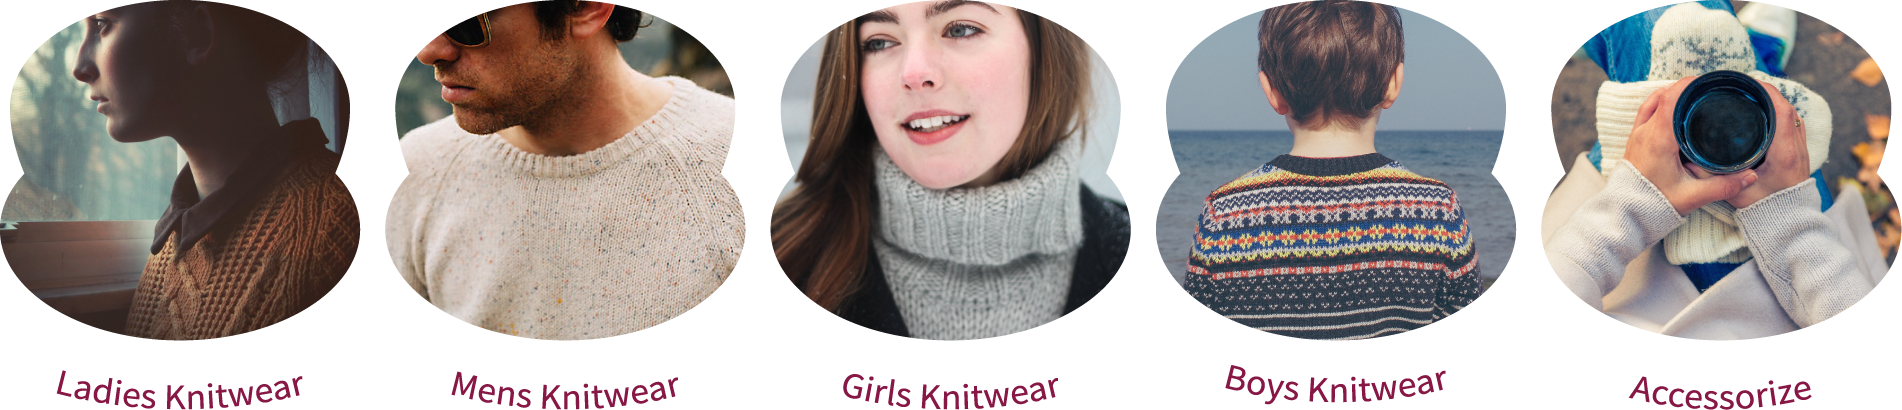 Knitwear is our Professional Business